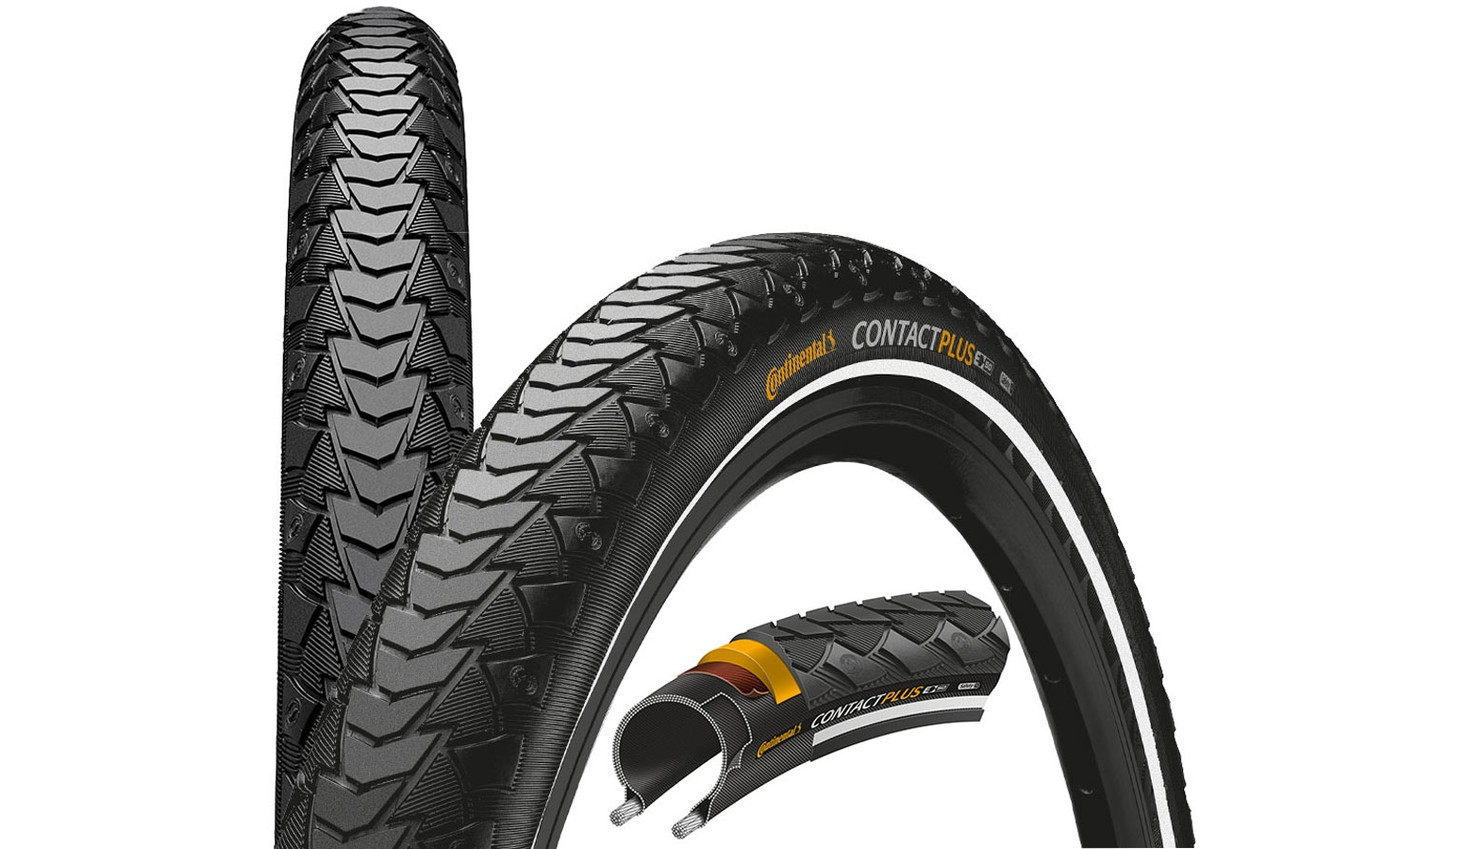 Continental PNEU CONTACT PLUS REFLEX 26x1.75 NEGRA